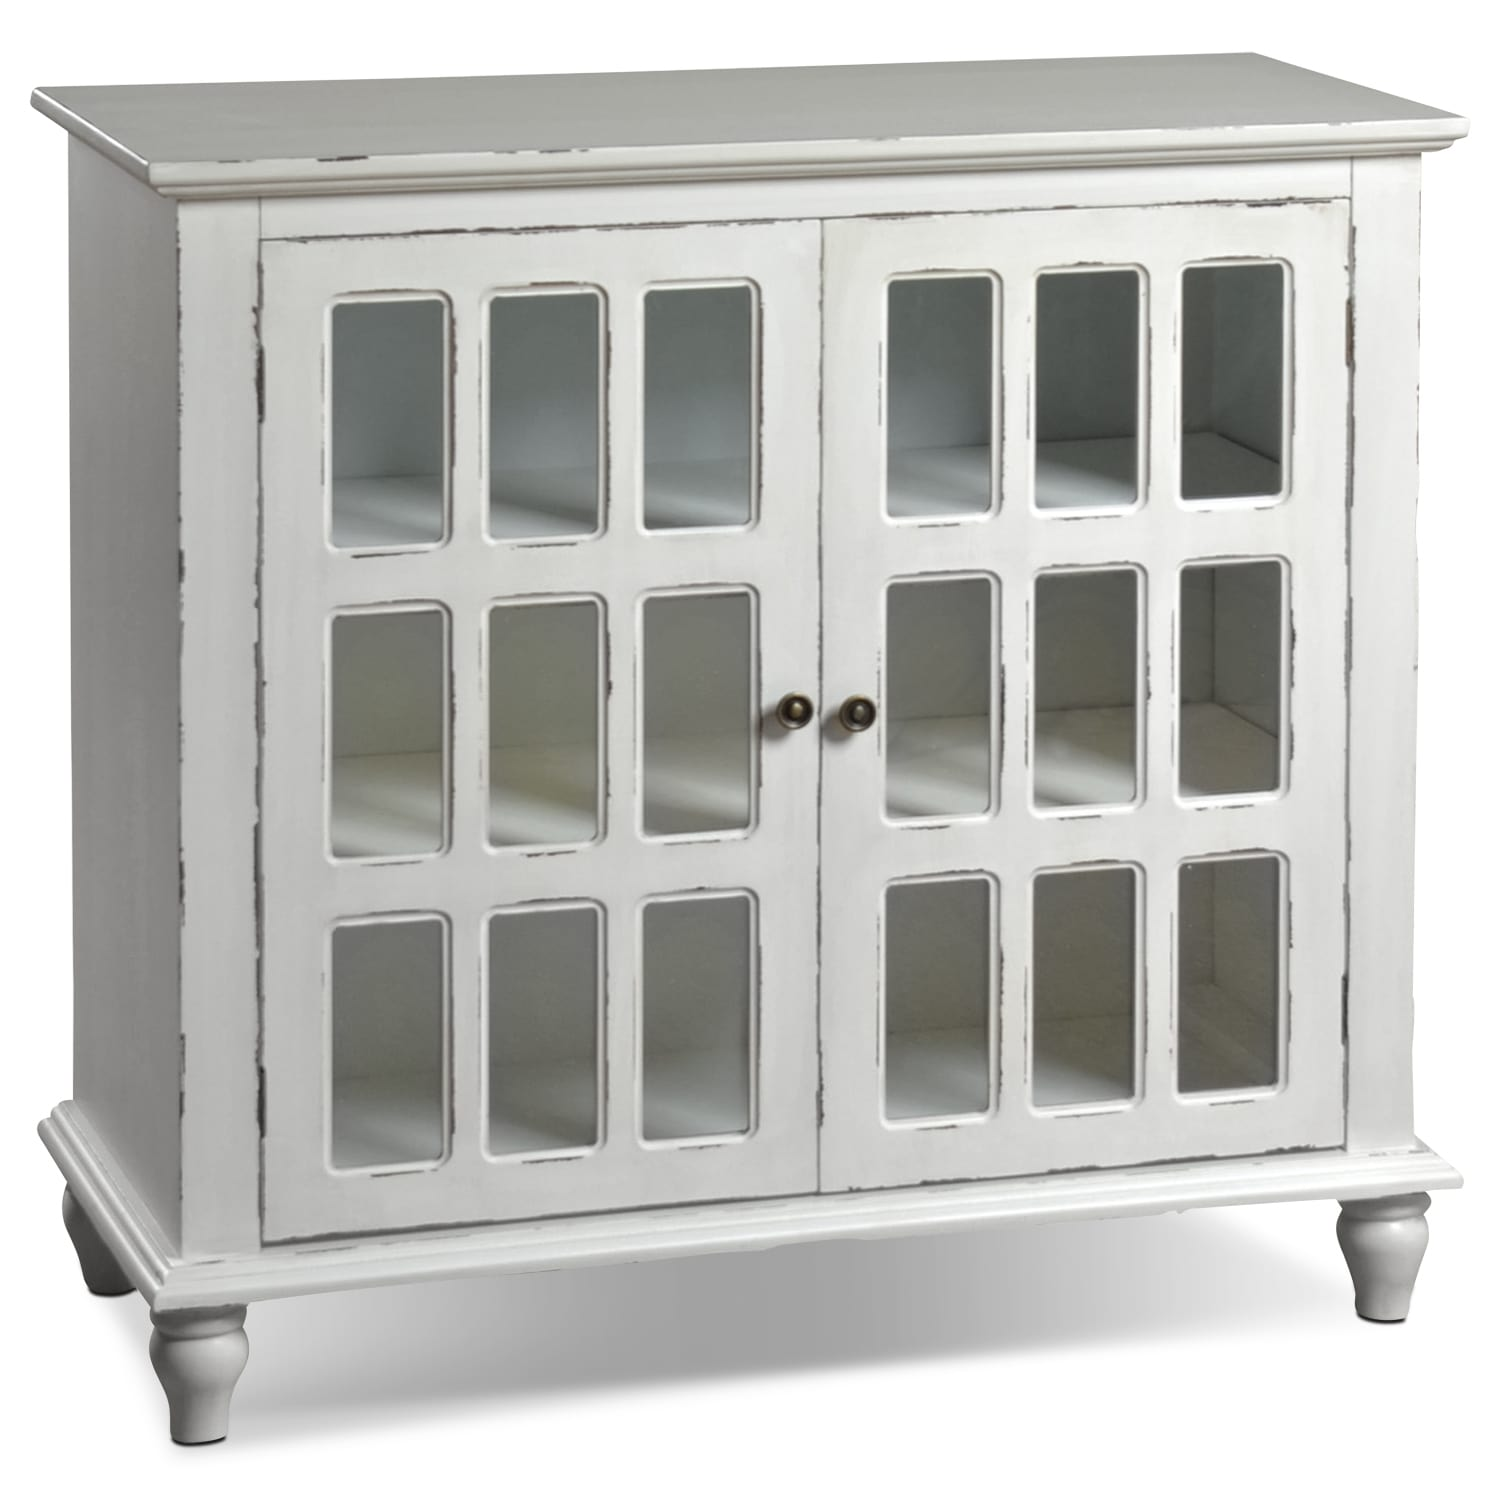 Sarah Check Hearth Cabinet: Bray Accent Cabinet - Antique Ivory